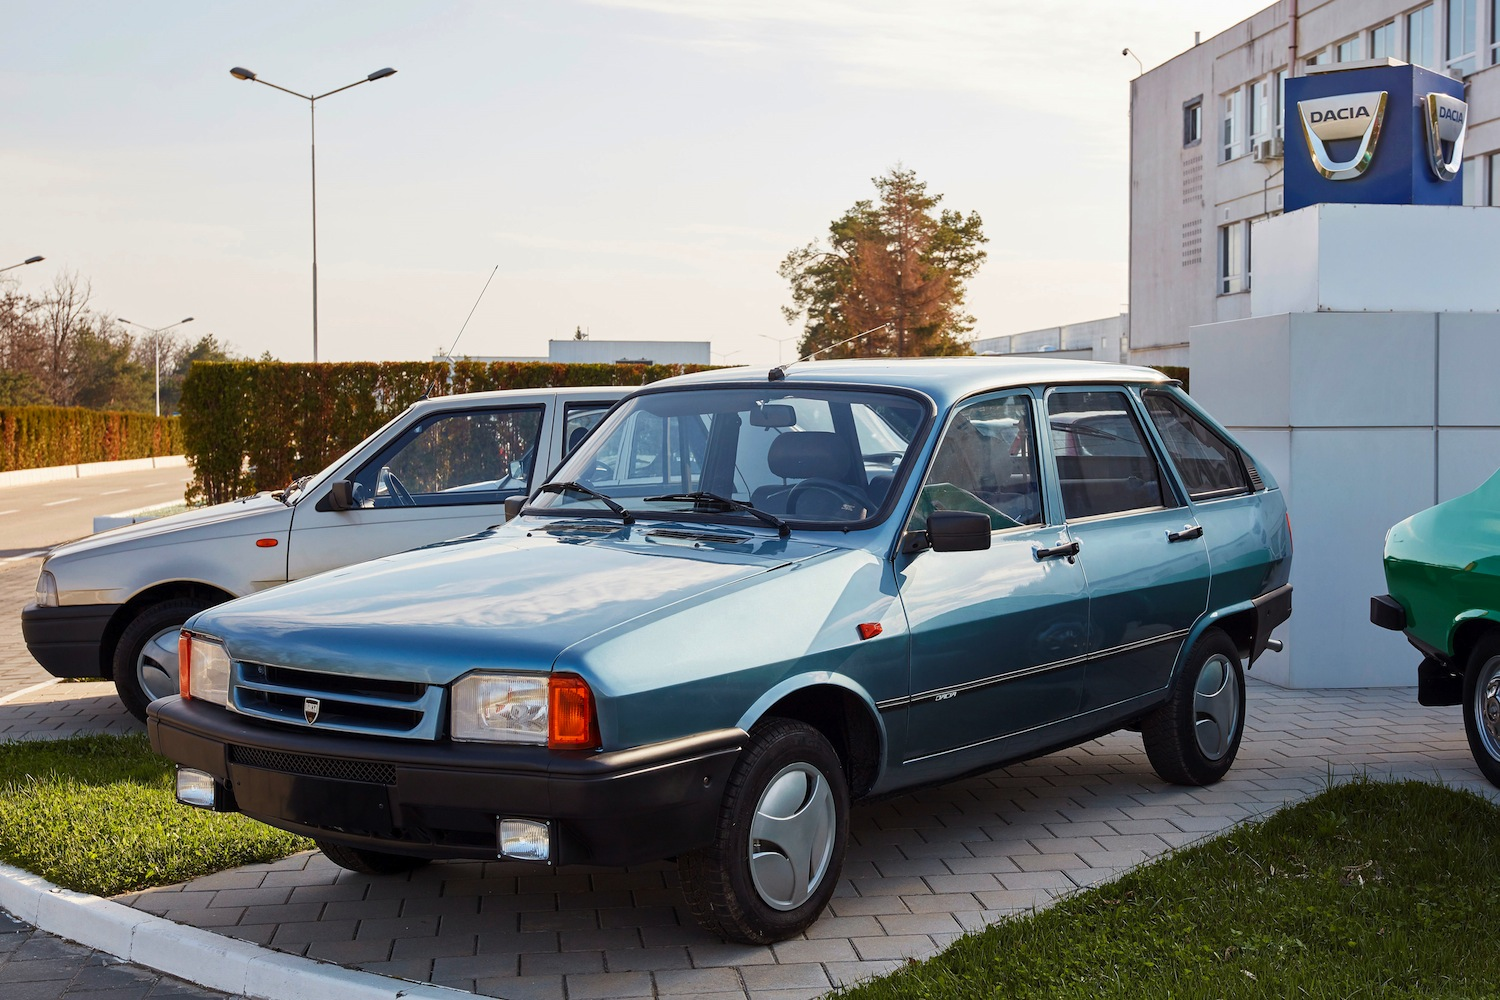 2018 - Collection Heritage Dacia